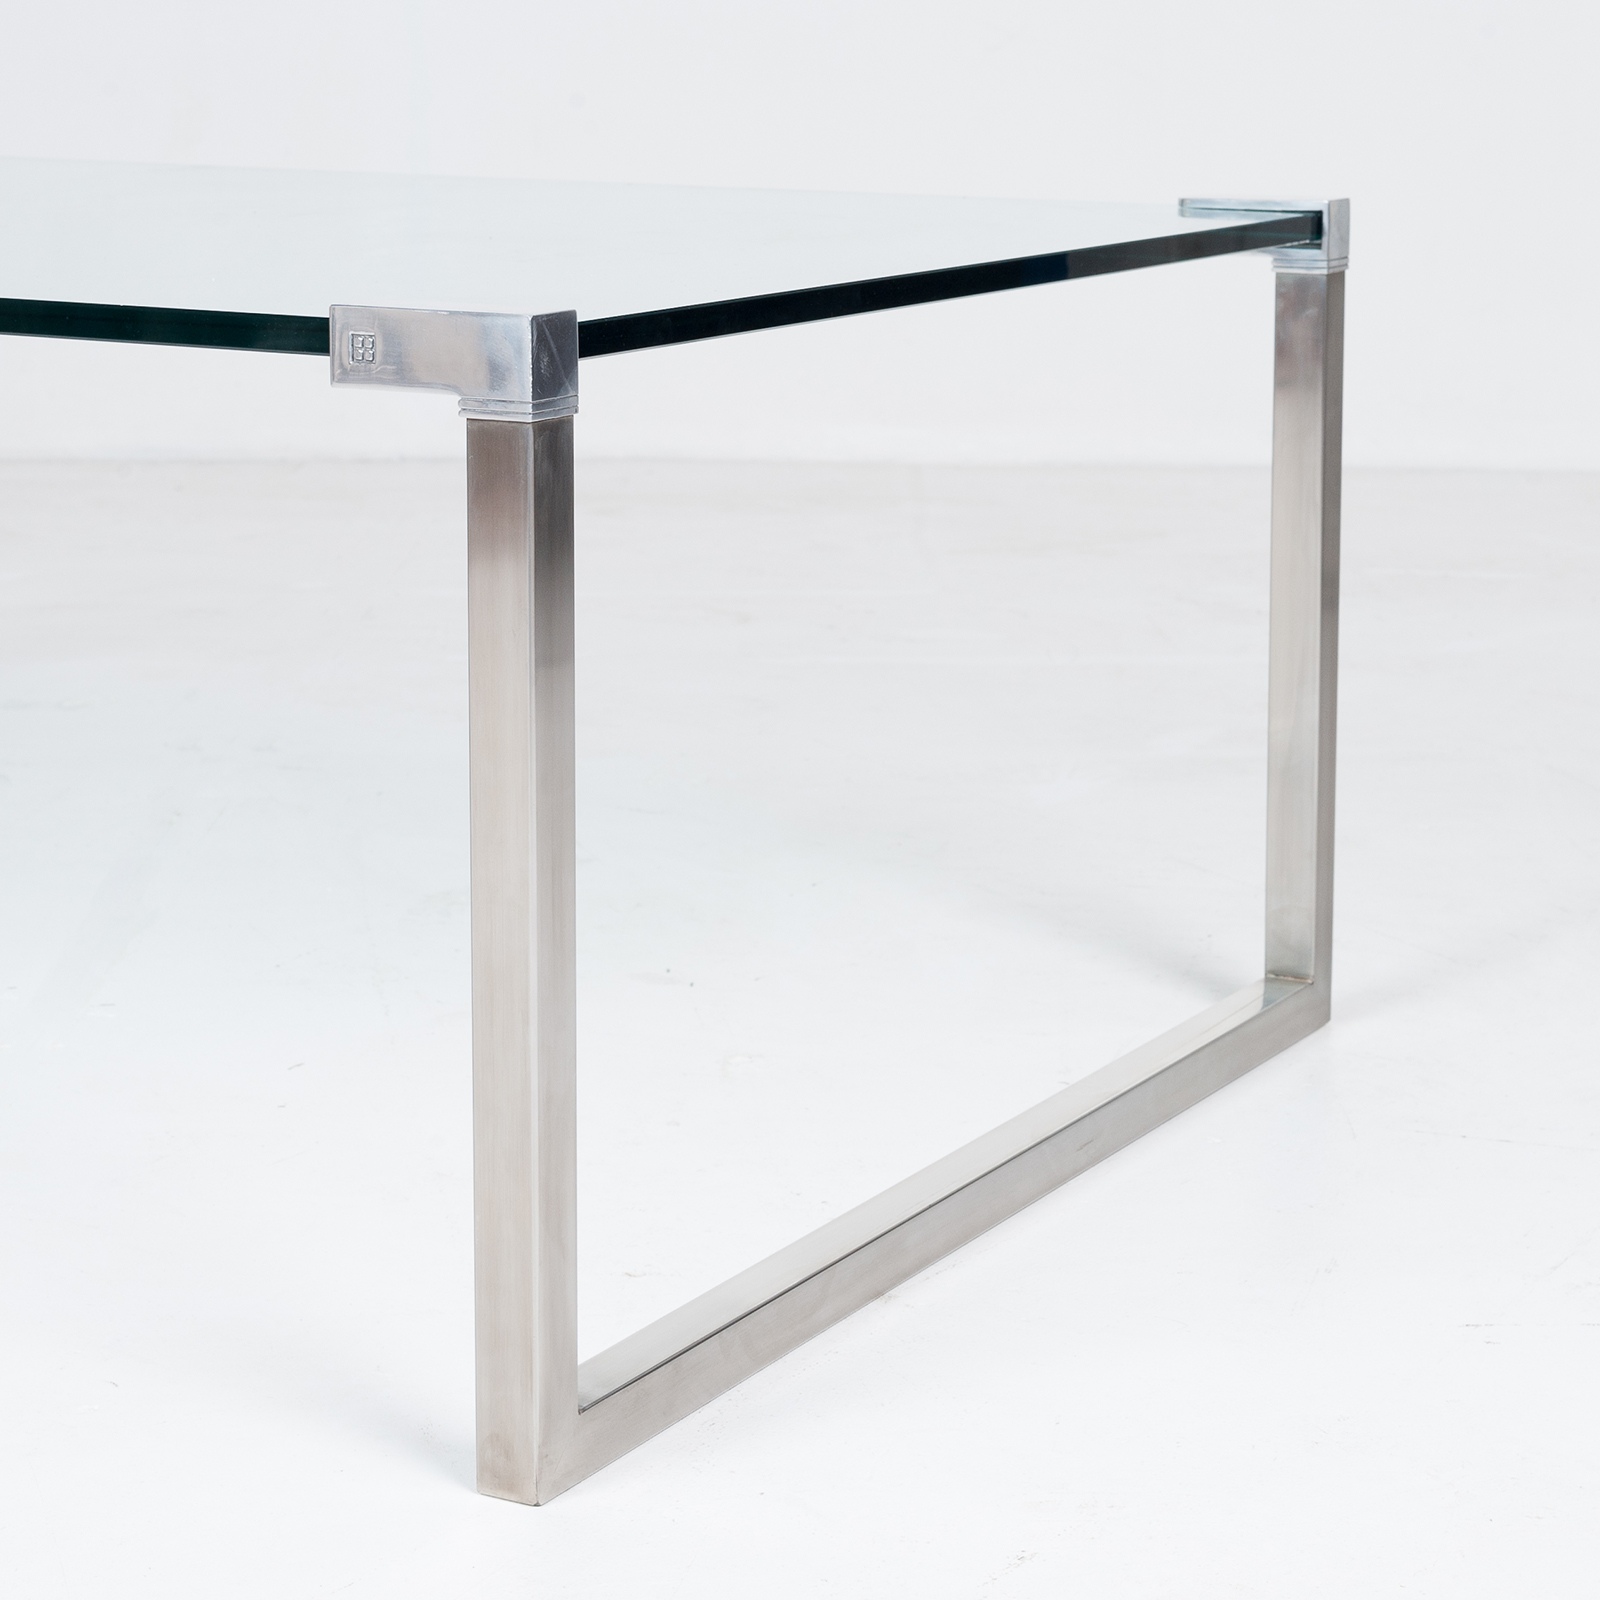 Model T53 Coffee Table By Peter Ghyczy, 1970s, The Netherlands 75